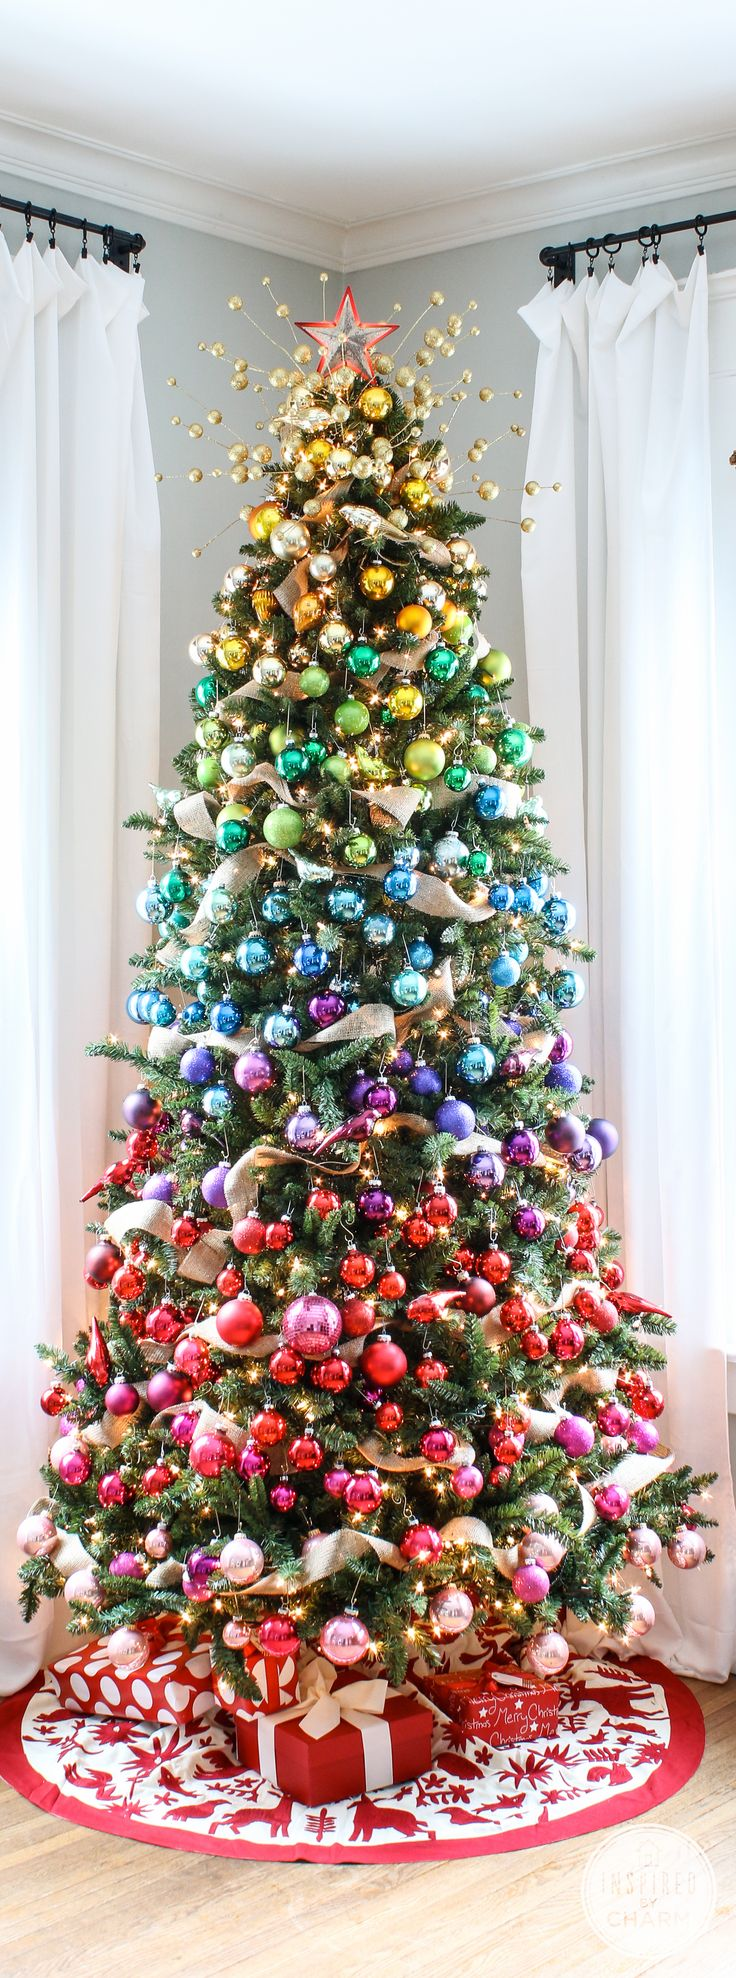 the most colorful christmas trees and decorations you have ever seen homesthetics 2